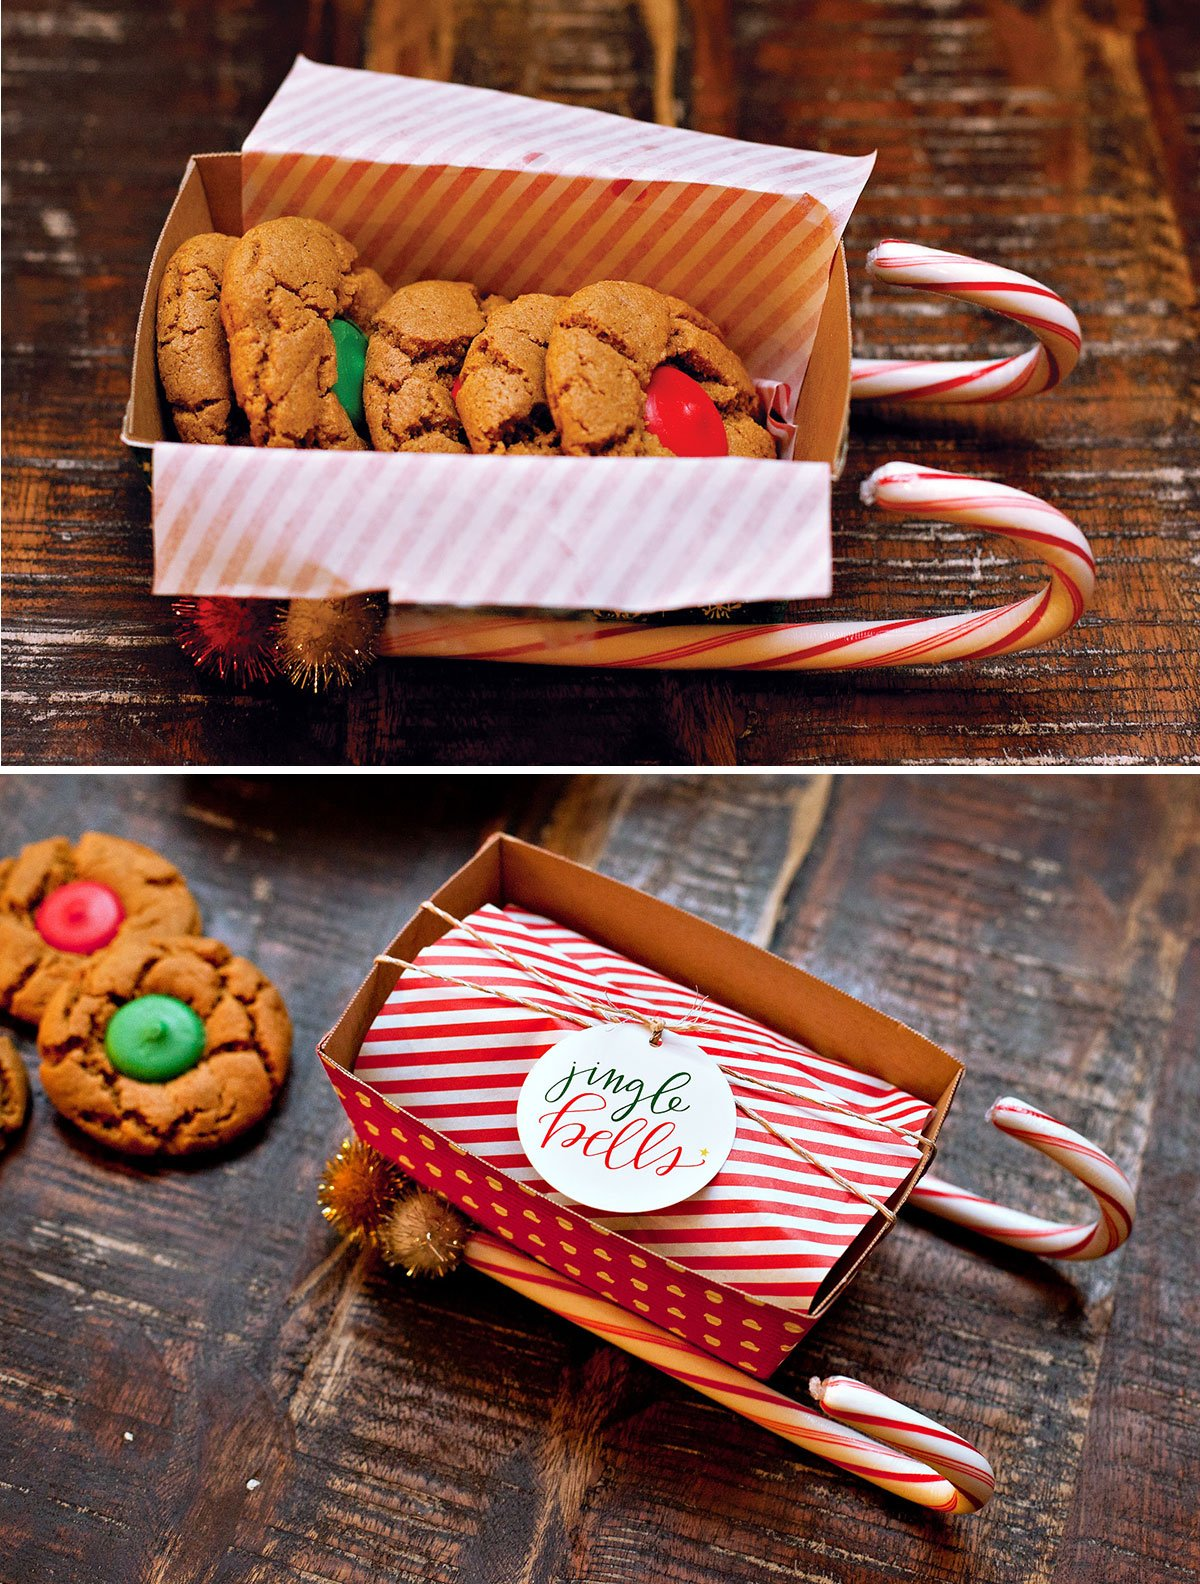 https://www.hwtm.com/wp-content/uploads/2020/11/cookie-sleigh-holiday-gift-idea_2.jpg